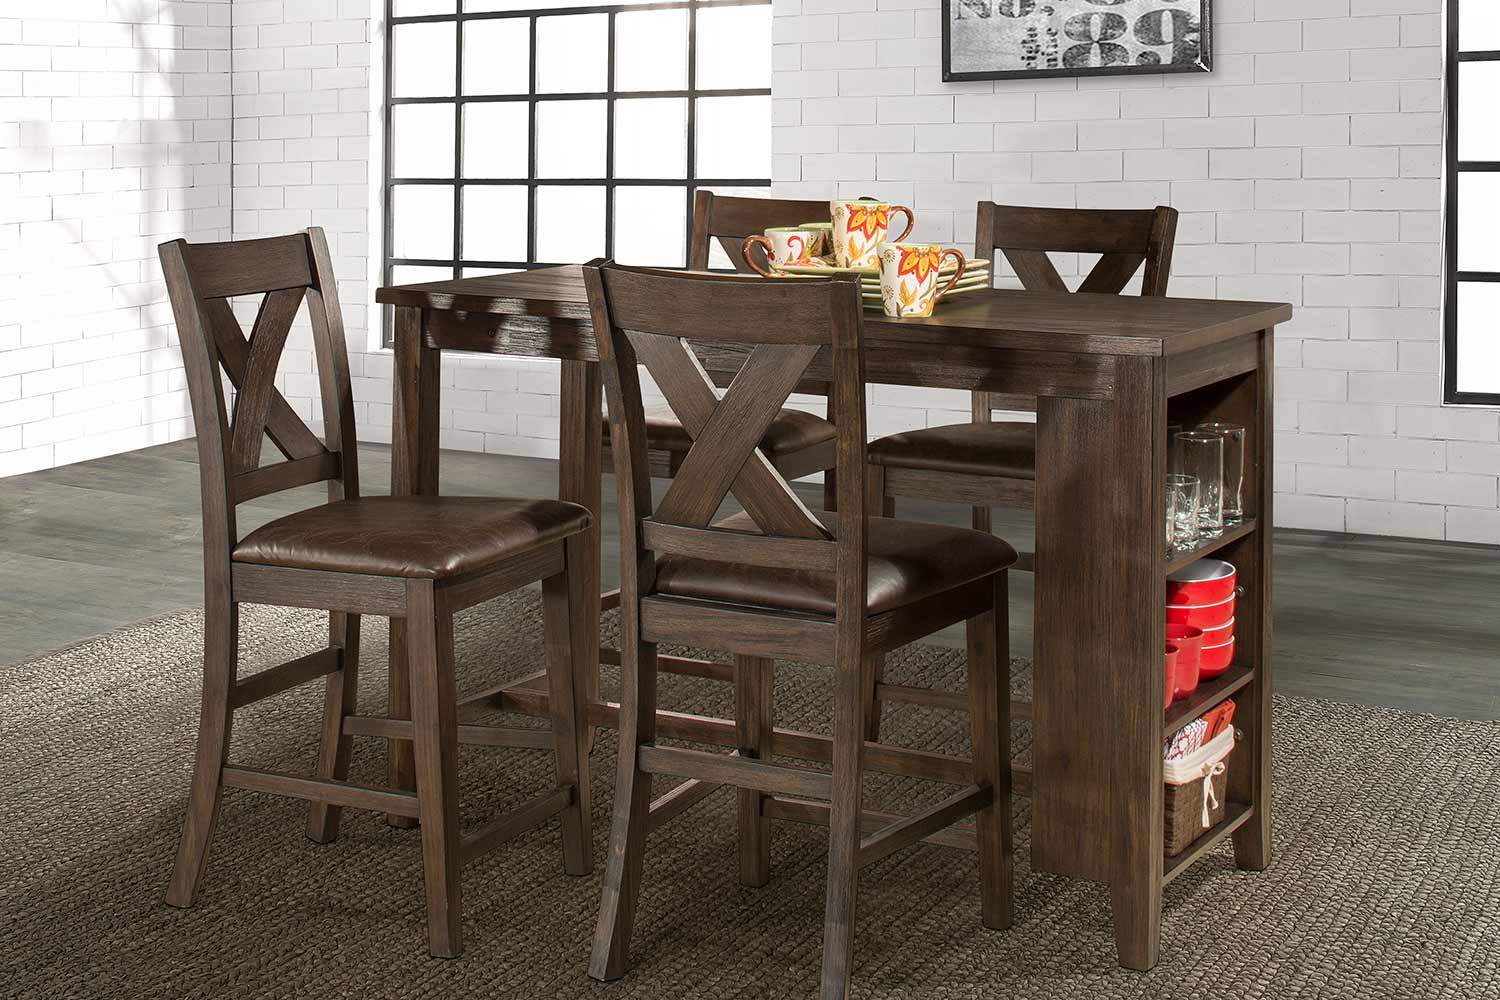 Hillsdale Spencer 5 Piece Counter Height Dining Set with X-Back Counter Height Stools - Dark Espresso